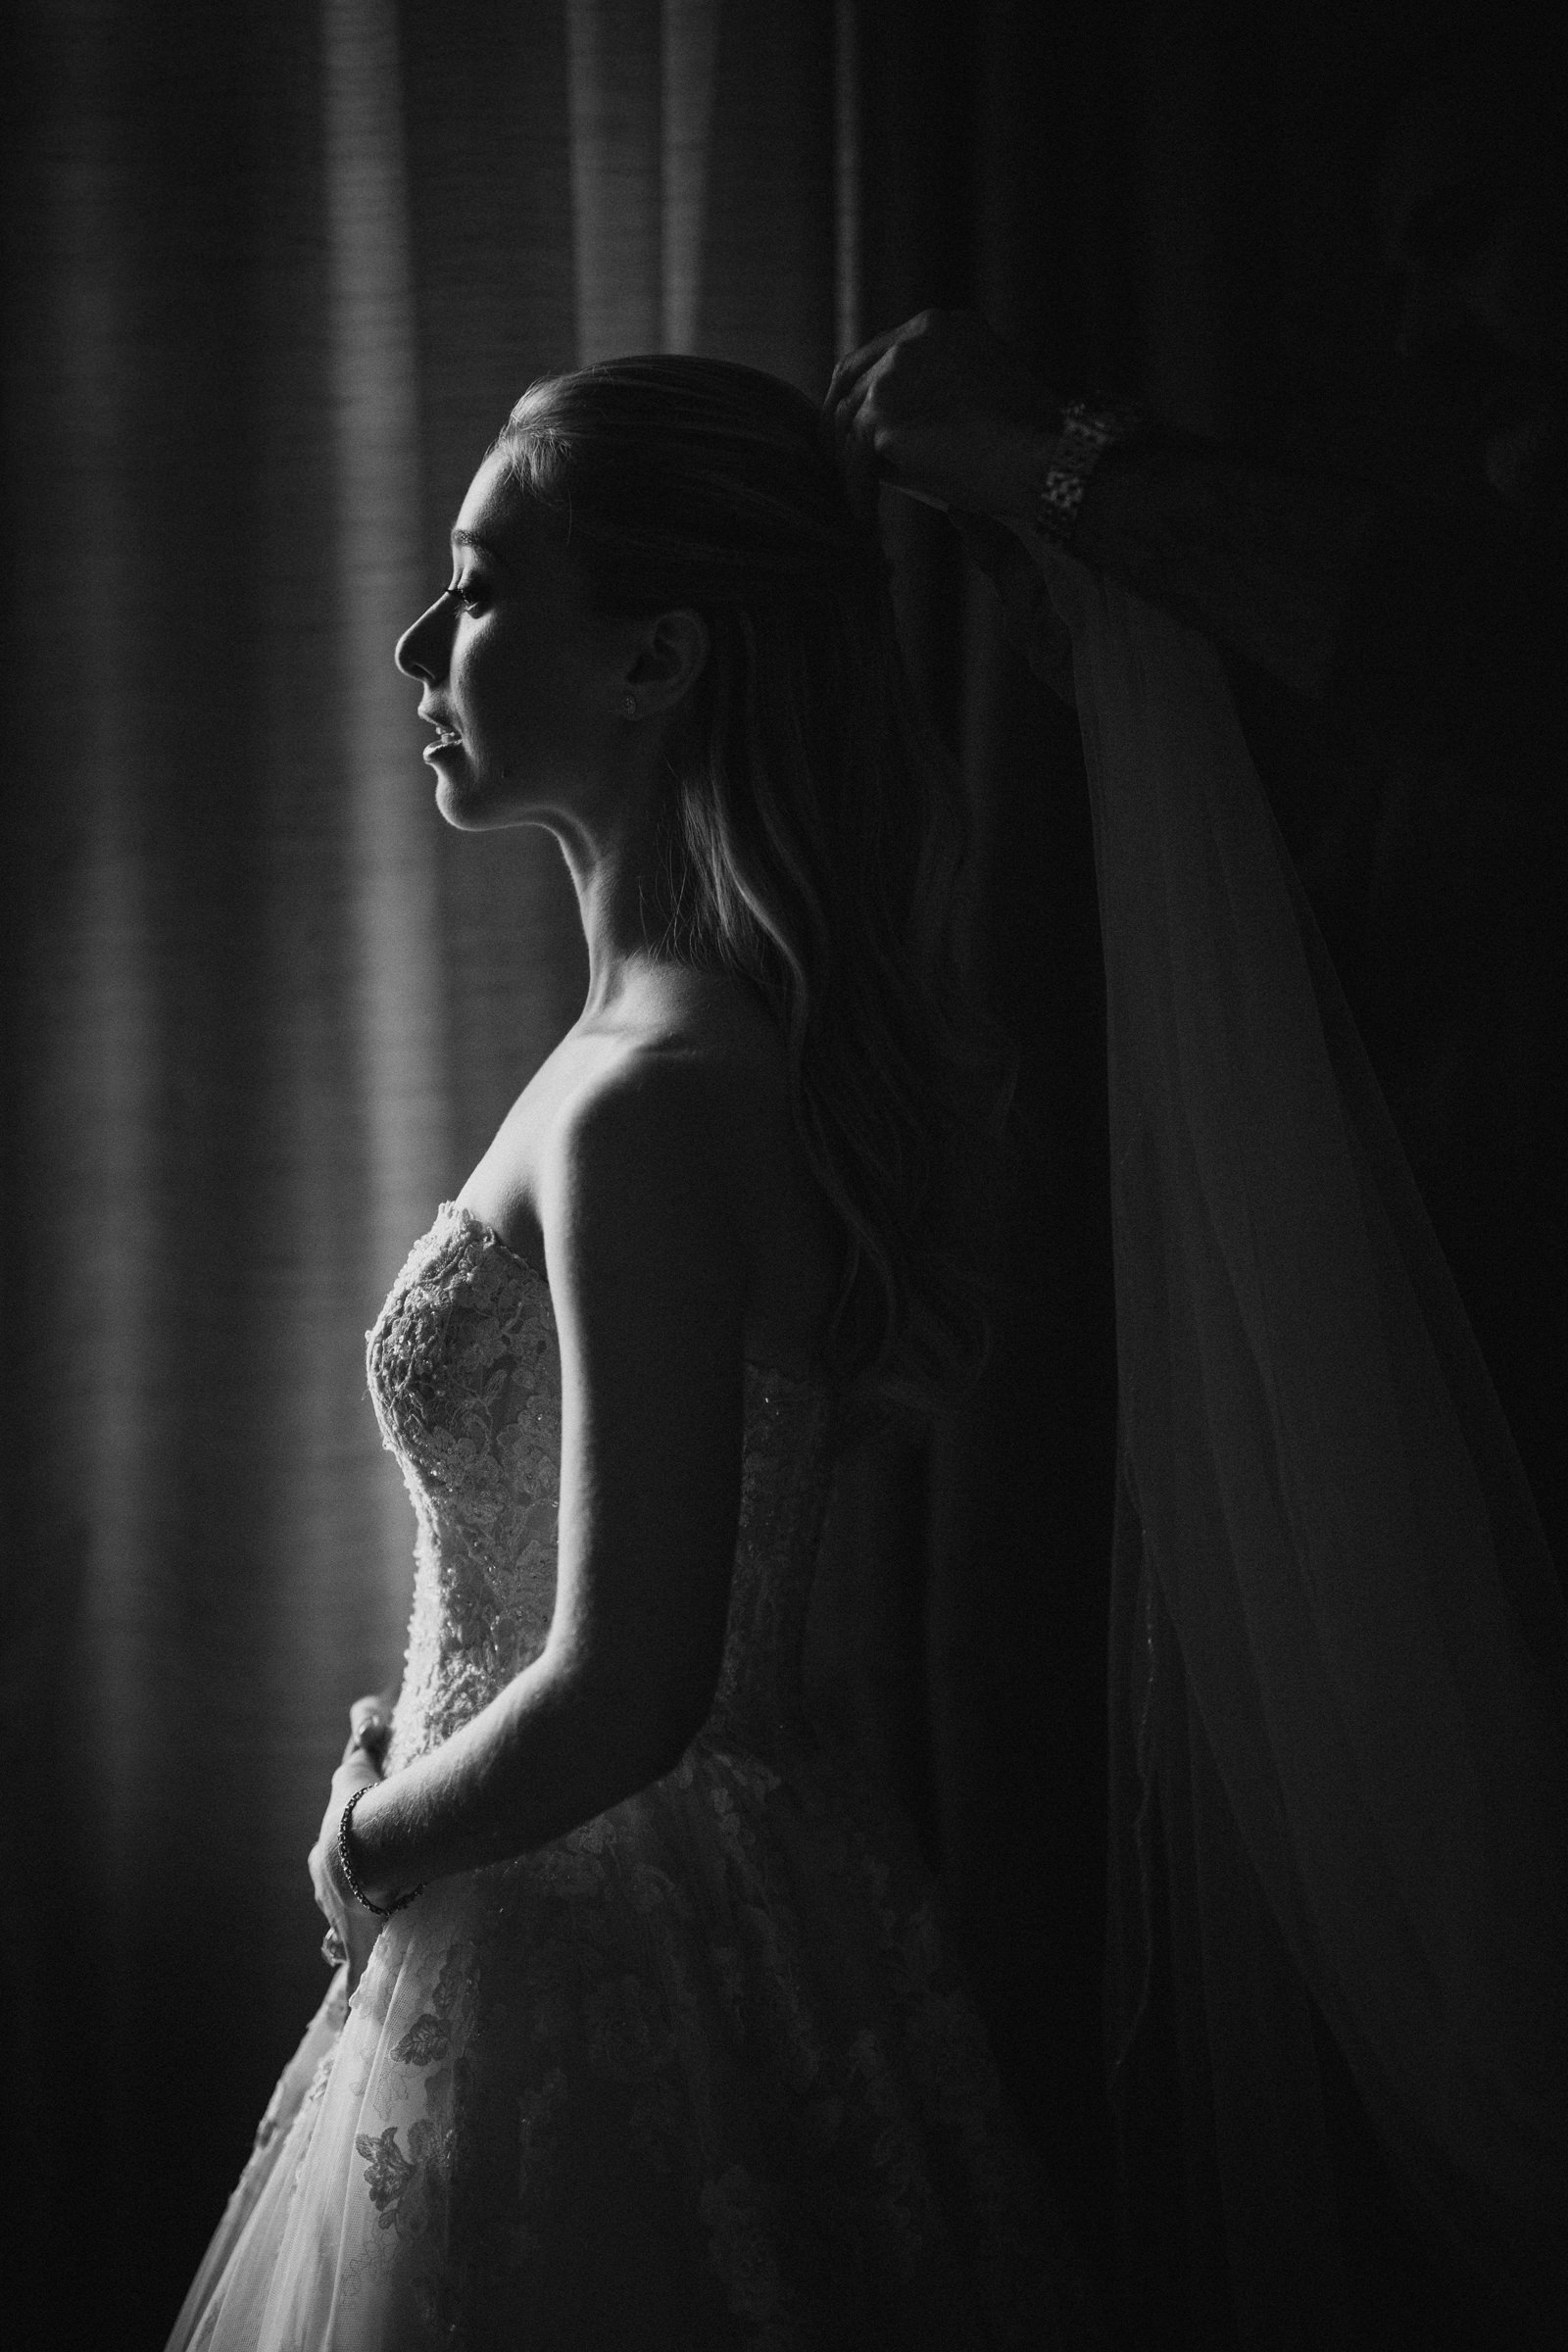 Moody black and white bridal portrait by window, by Susan Stripling